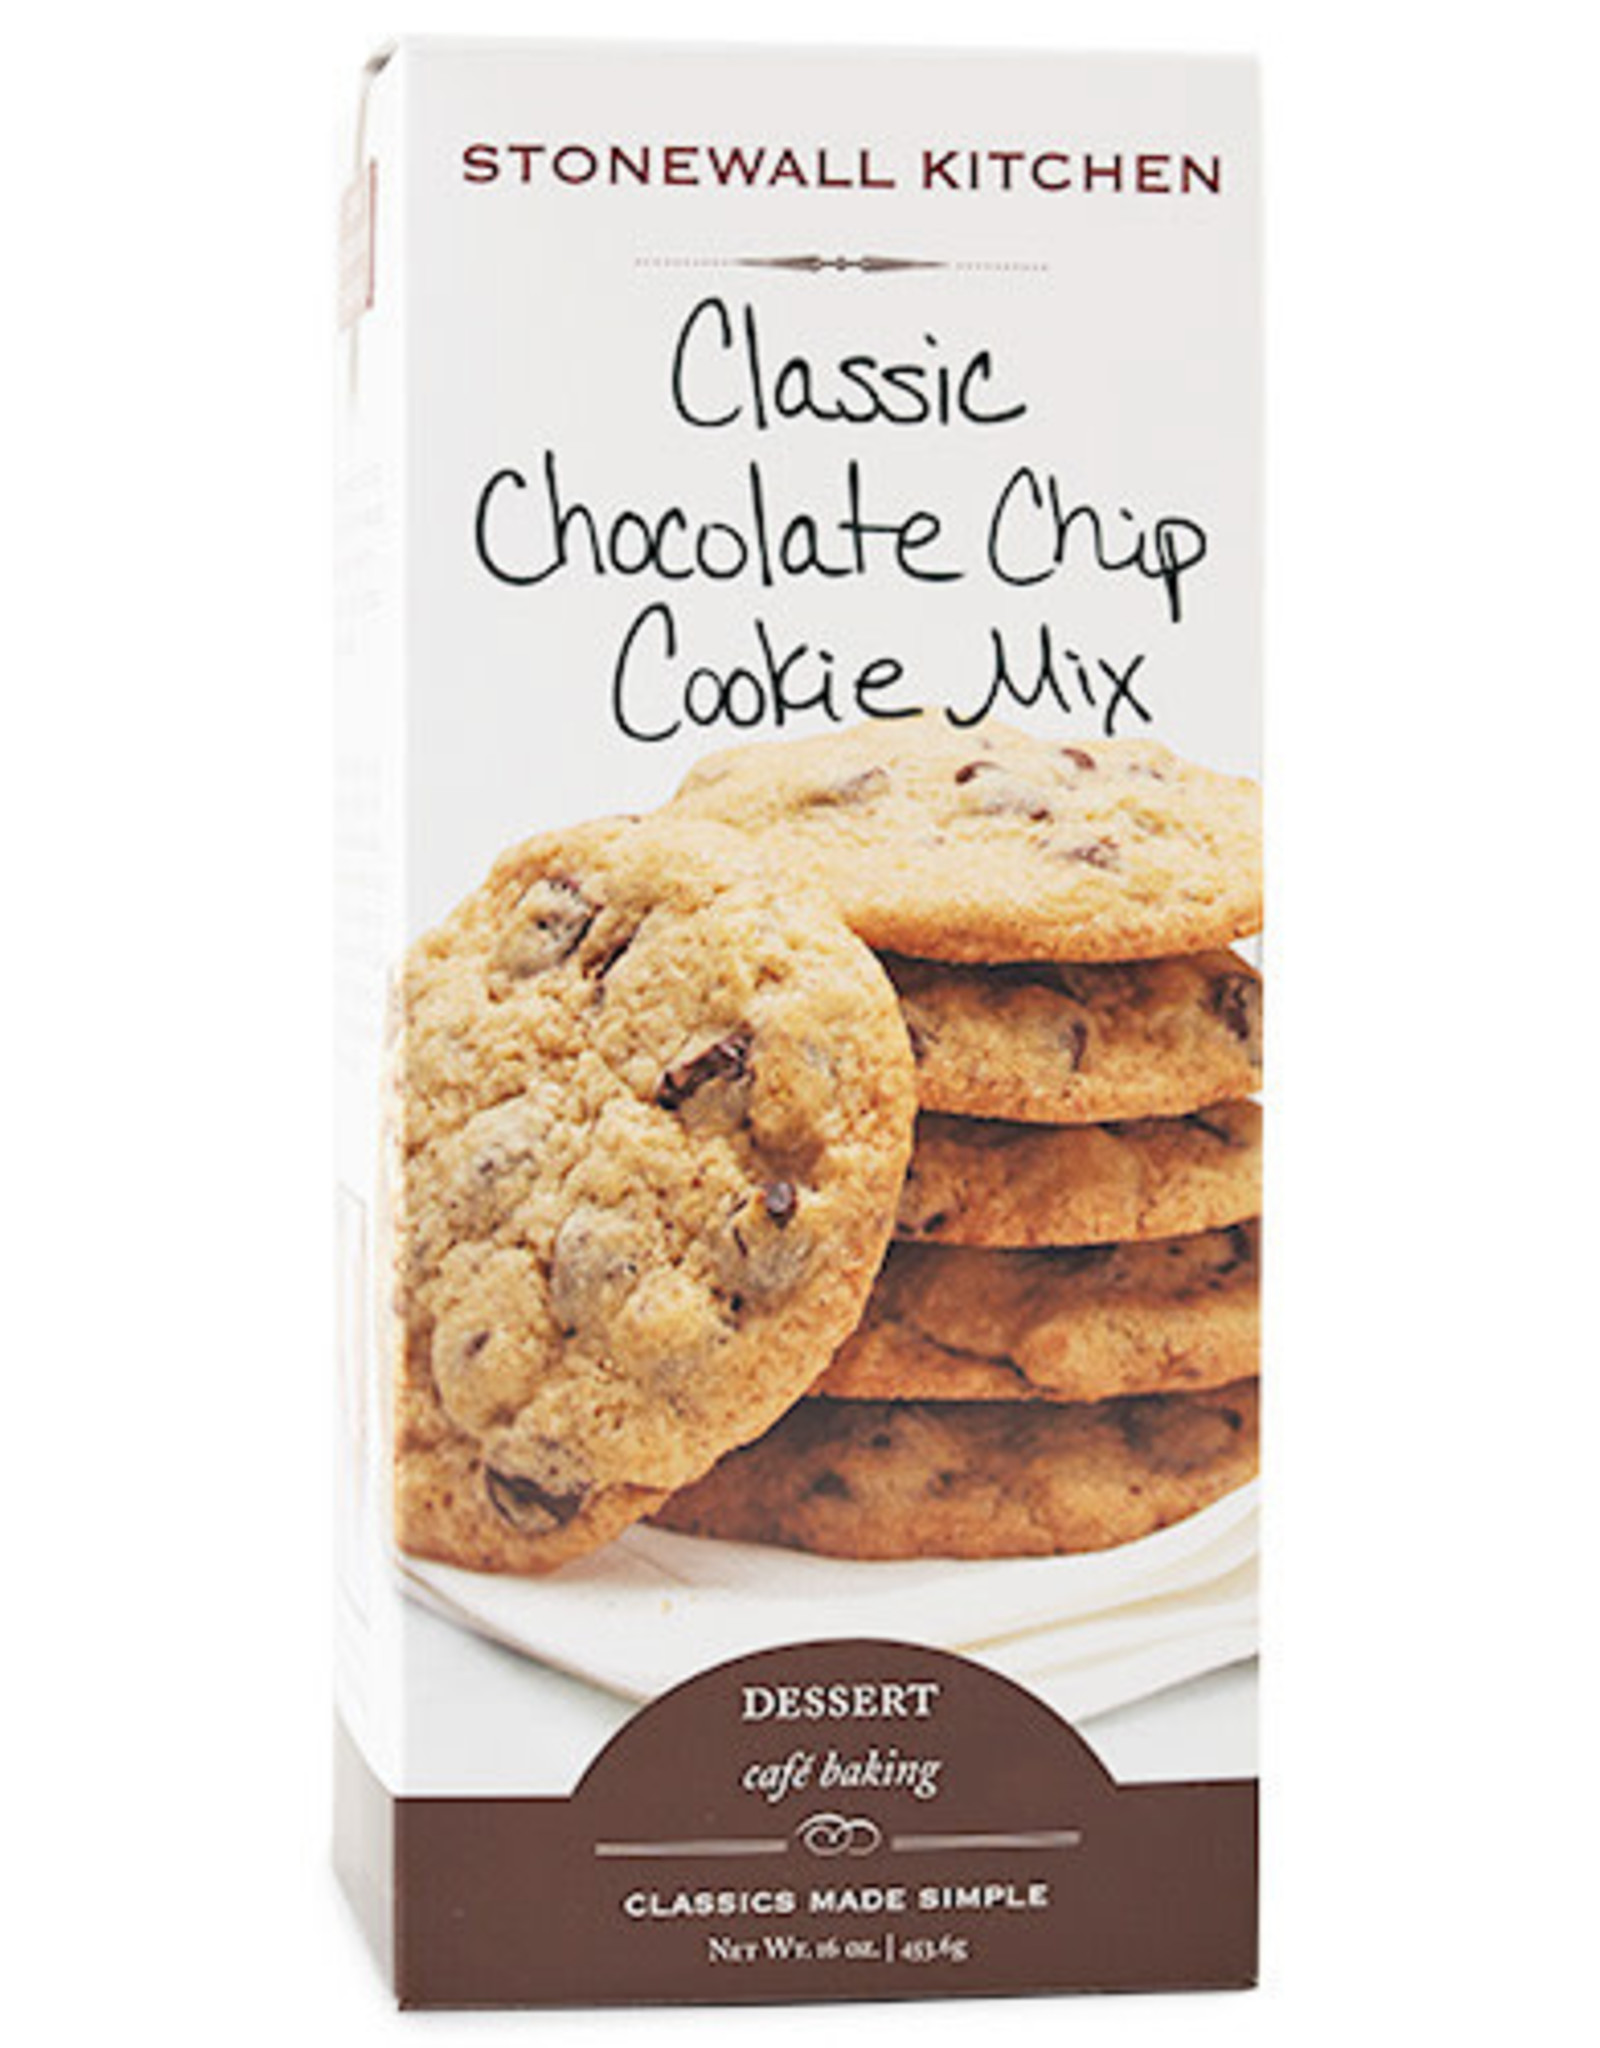 Stonewall Kitchen Chocolate Chip Cookie Mix